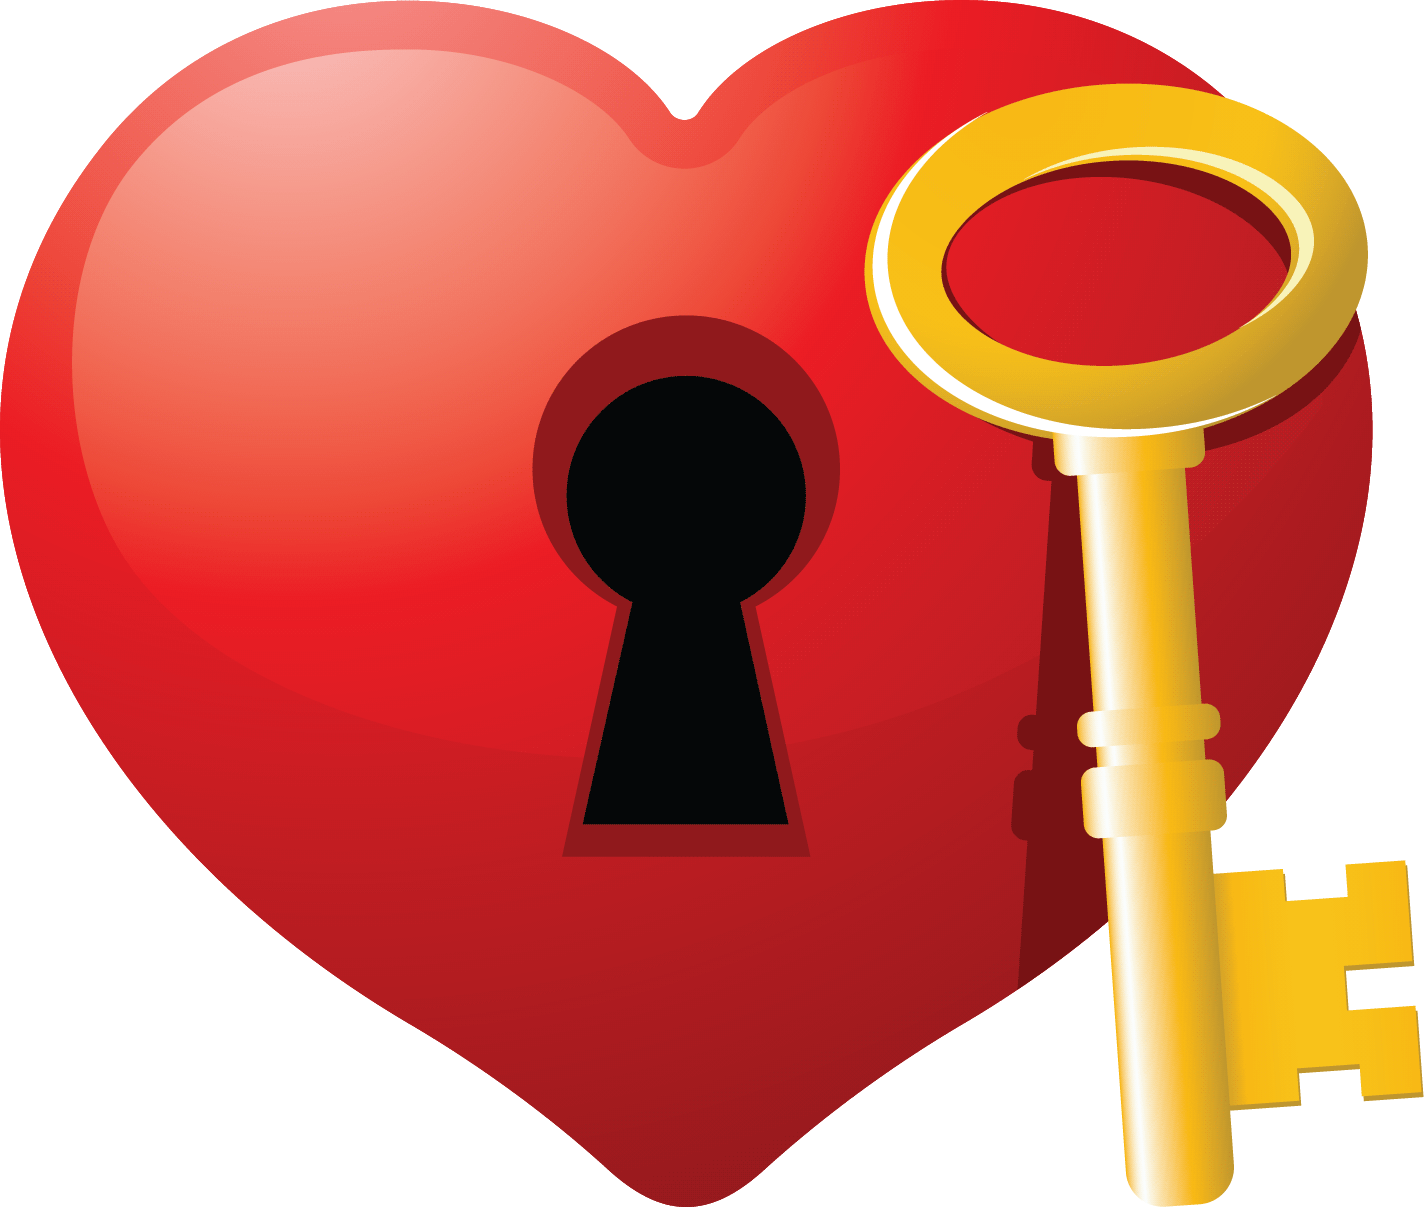 Free clip art of. Heat clipart funky heart